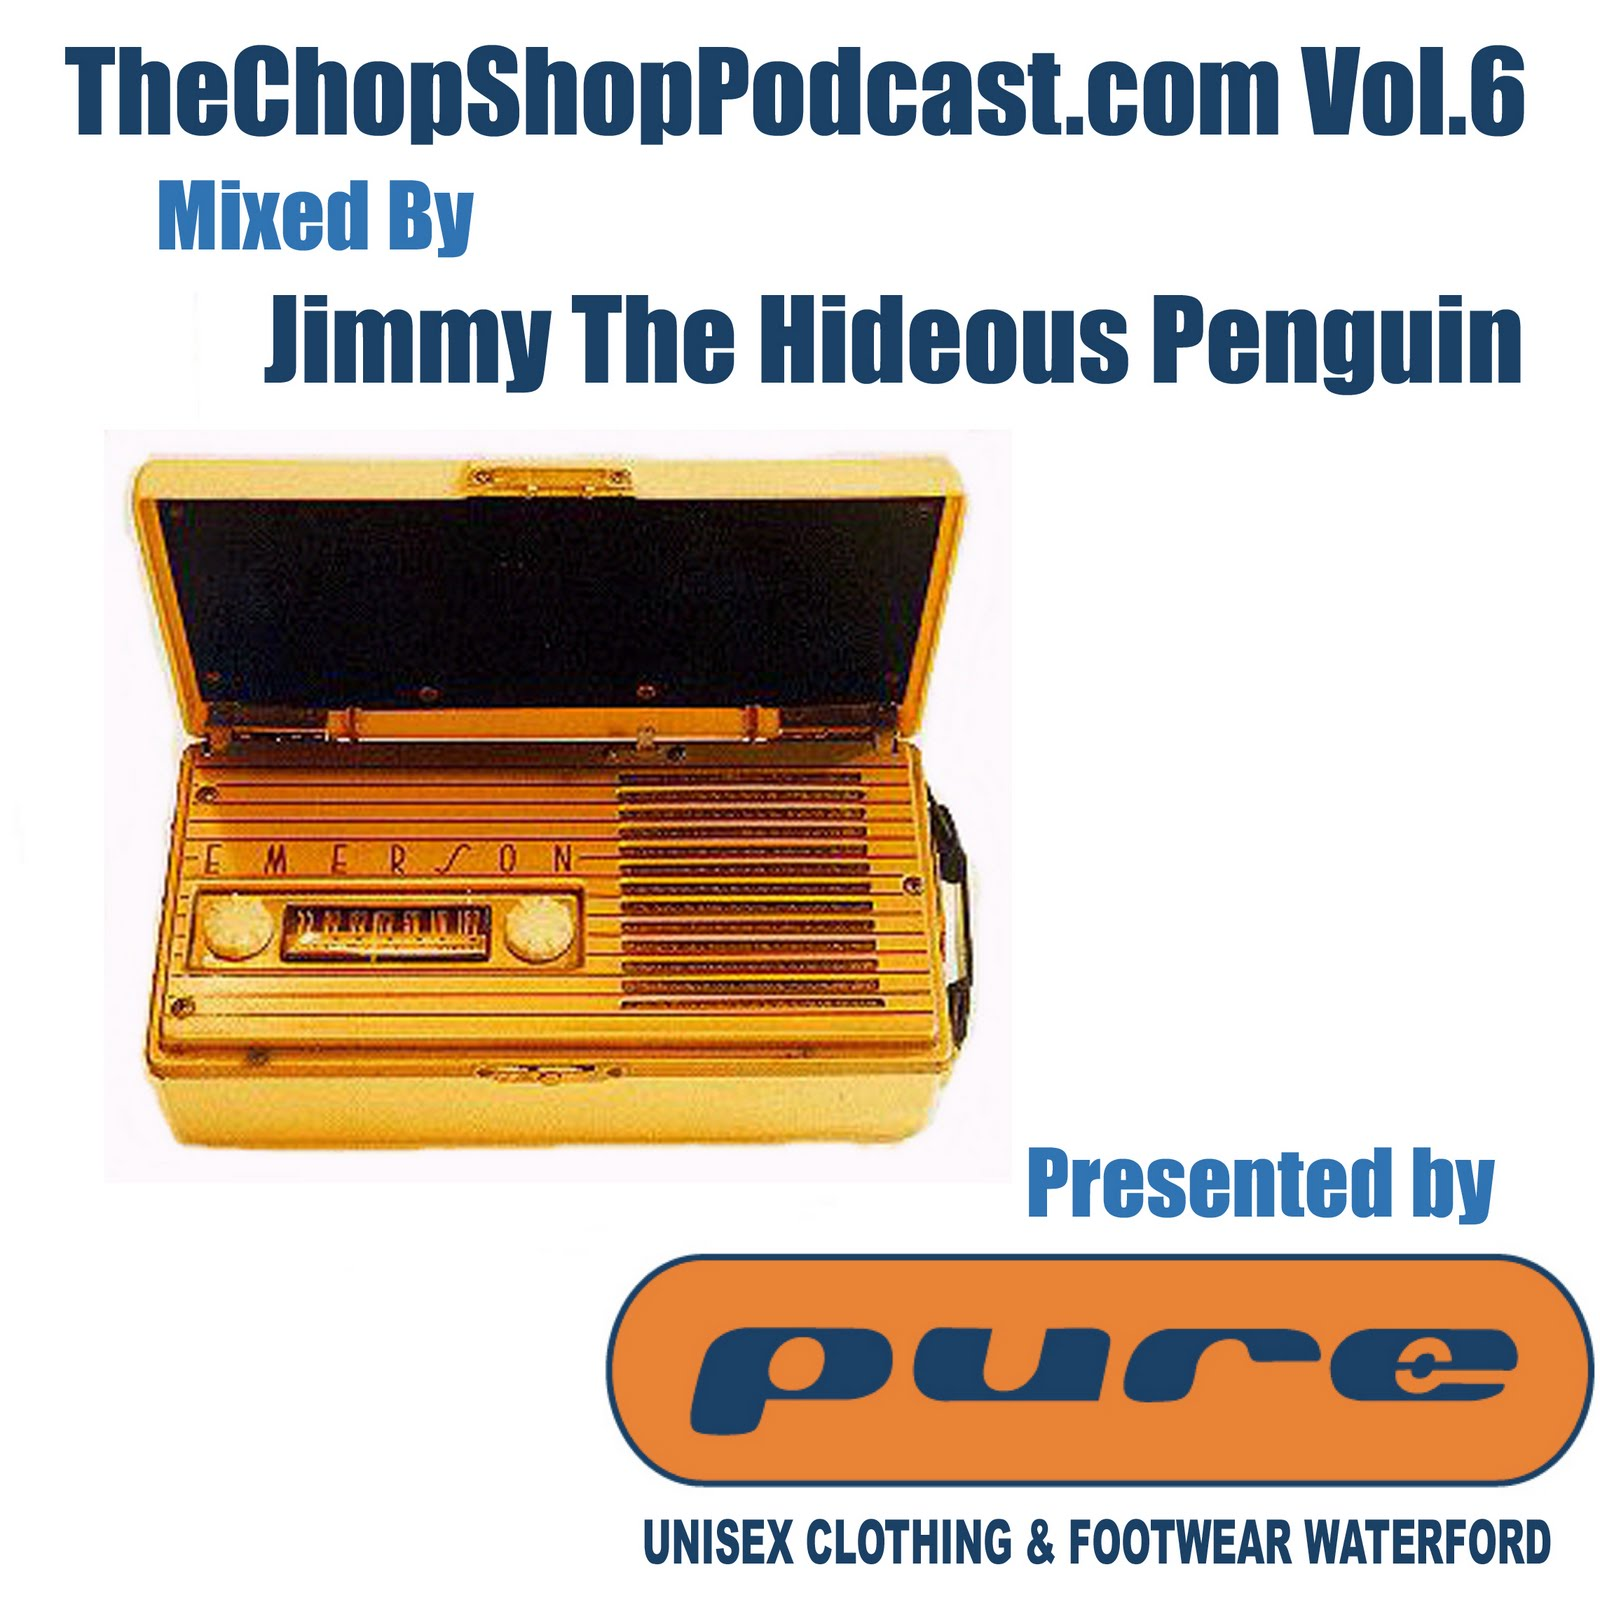 THE CHOP SHOP PODCAST: September 2010